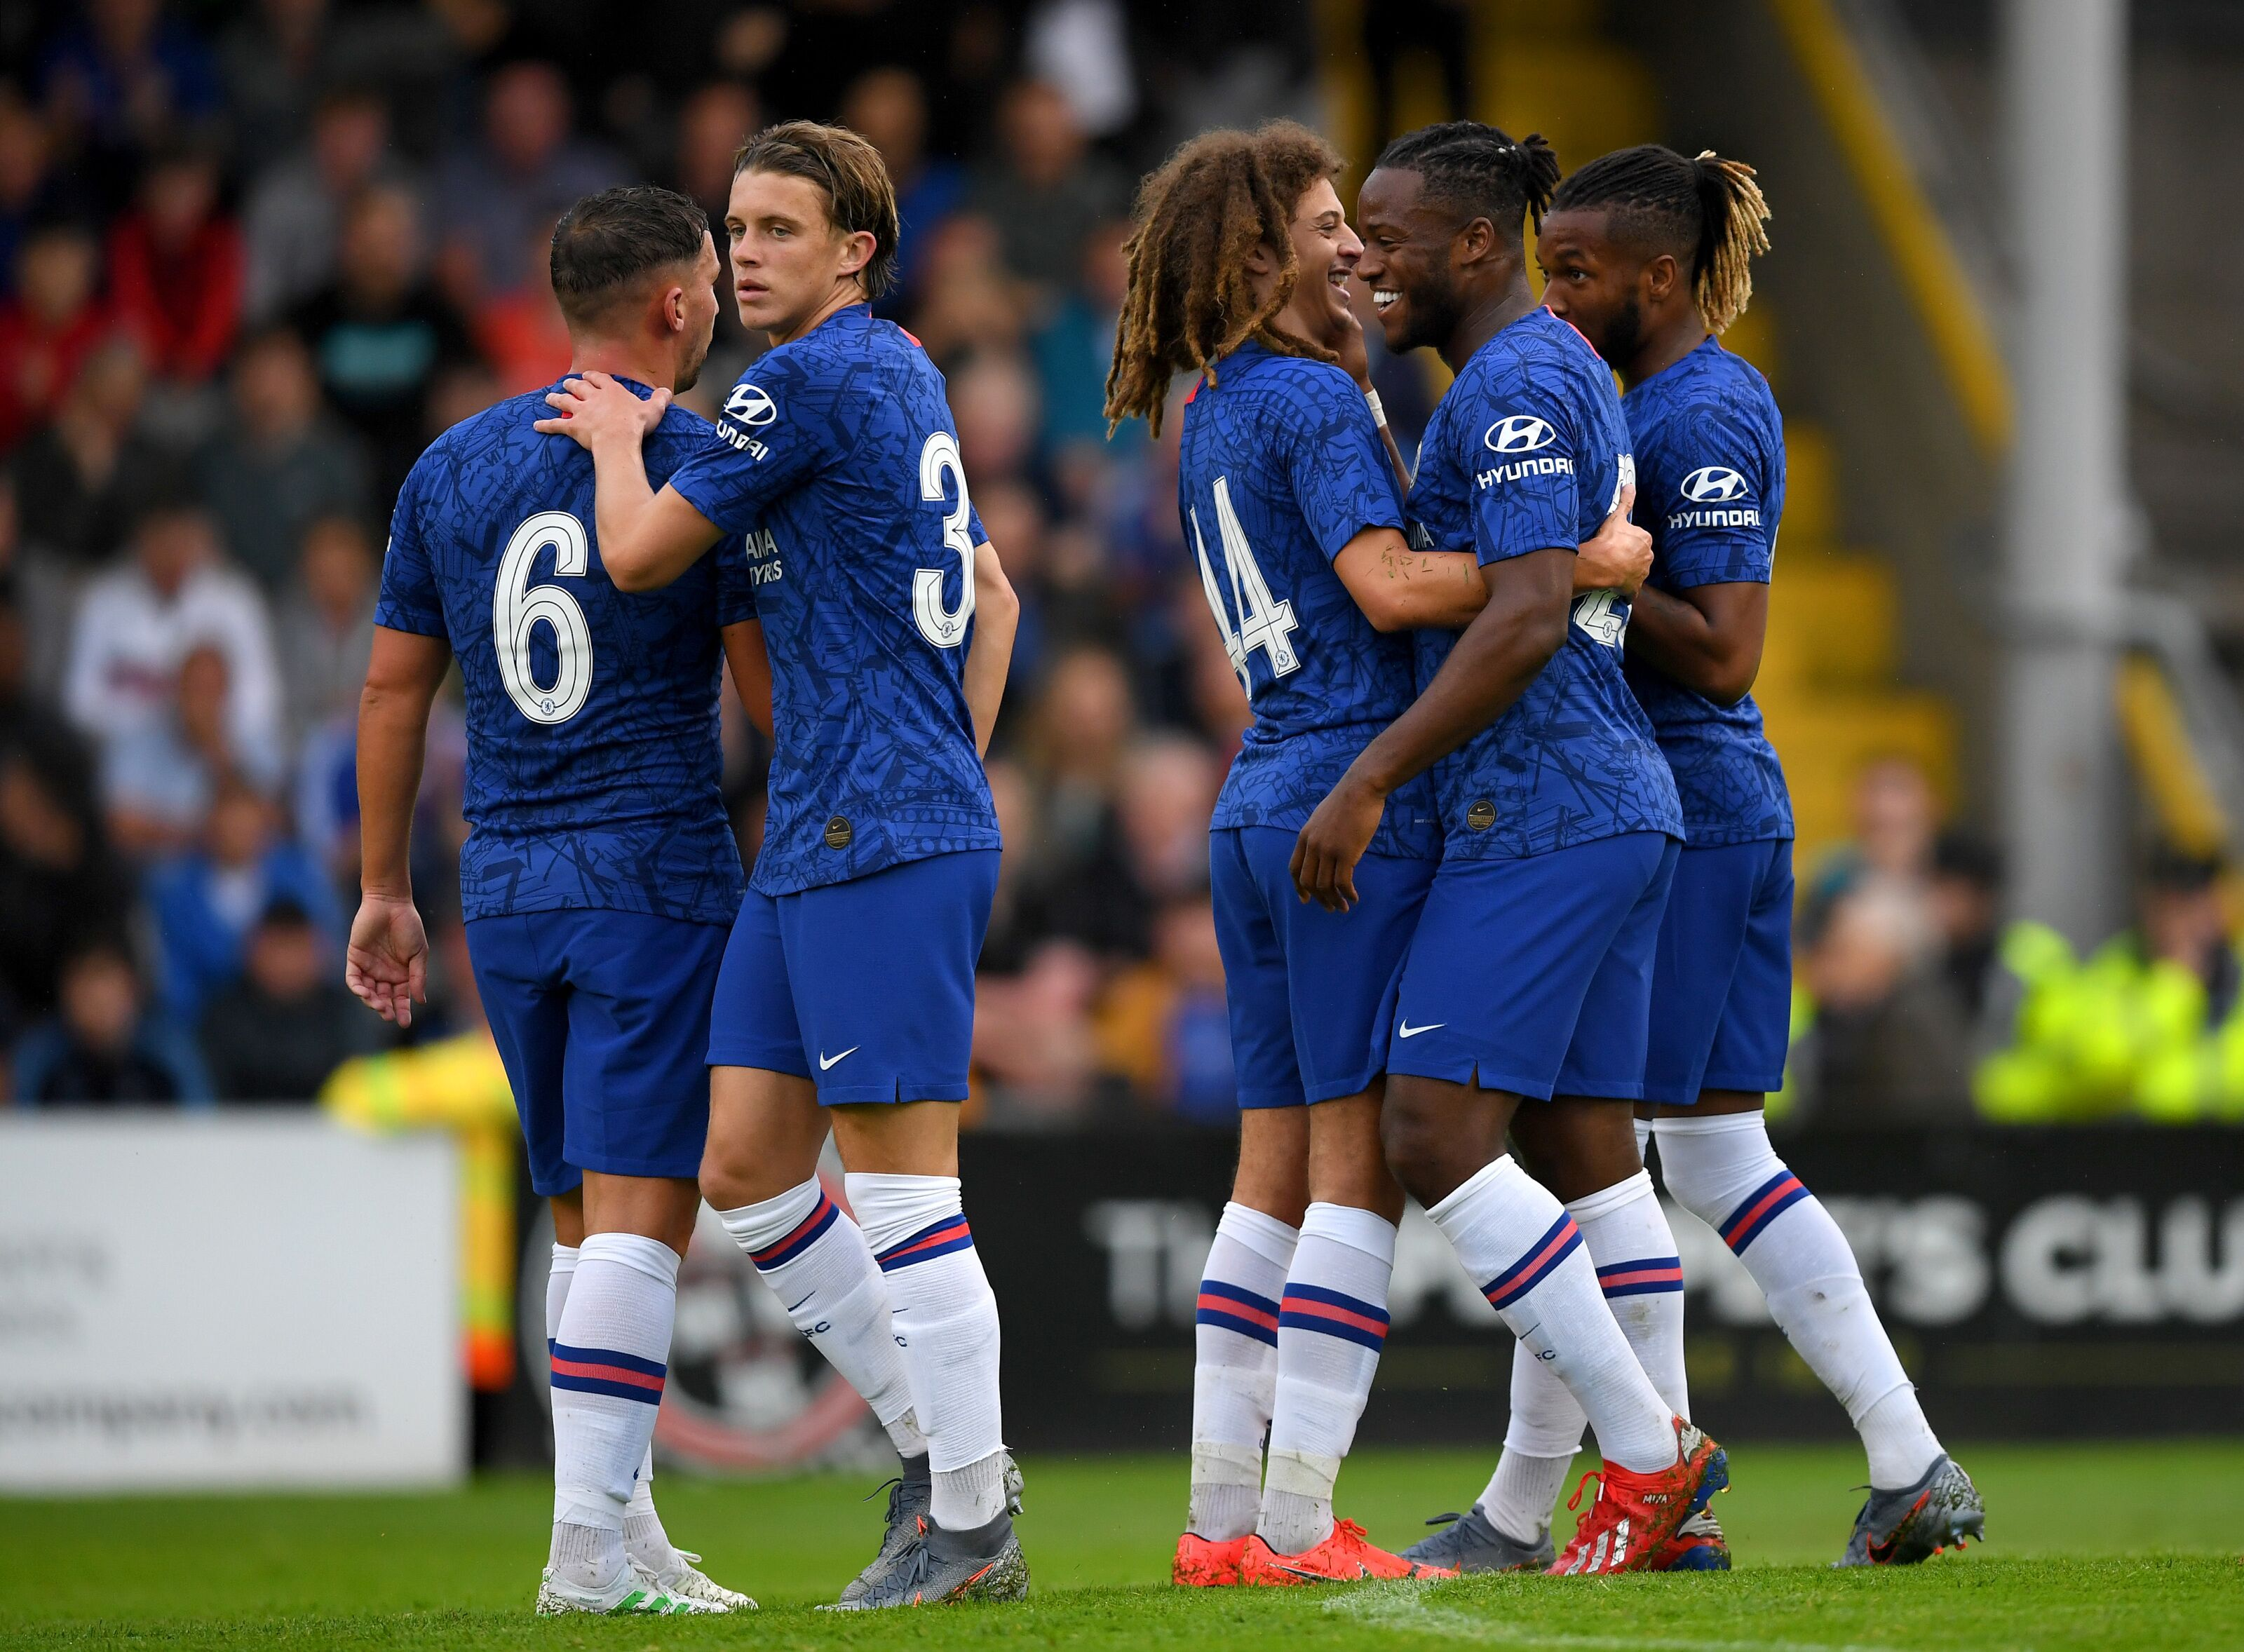 A new-look Chelsea squad could impress this season despite transfer ban